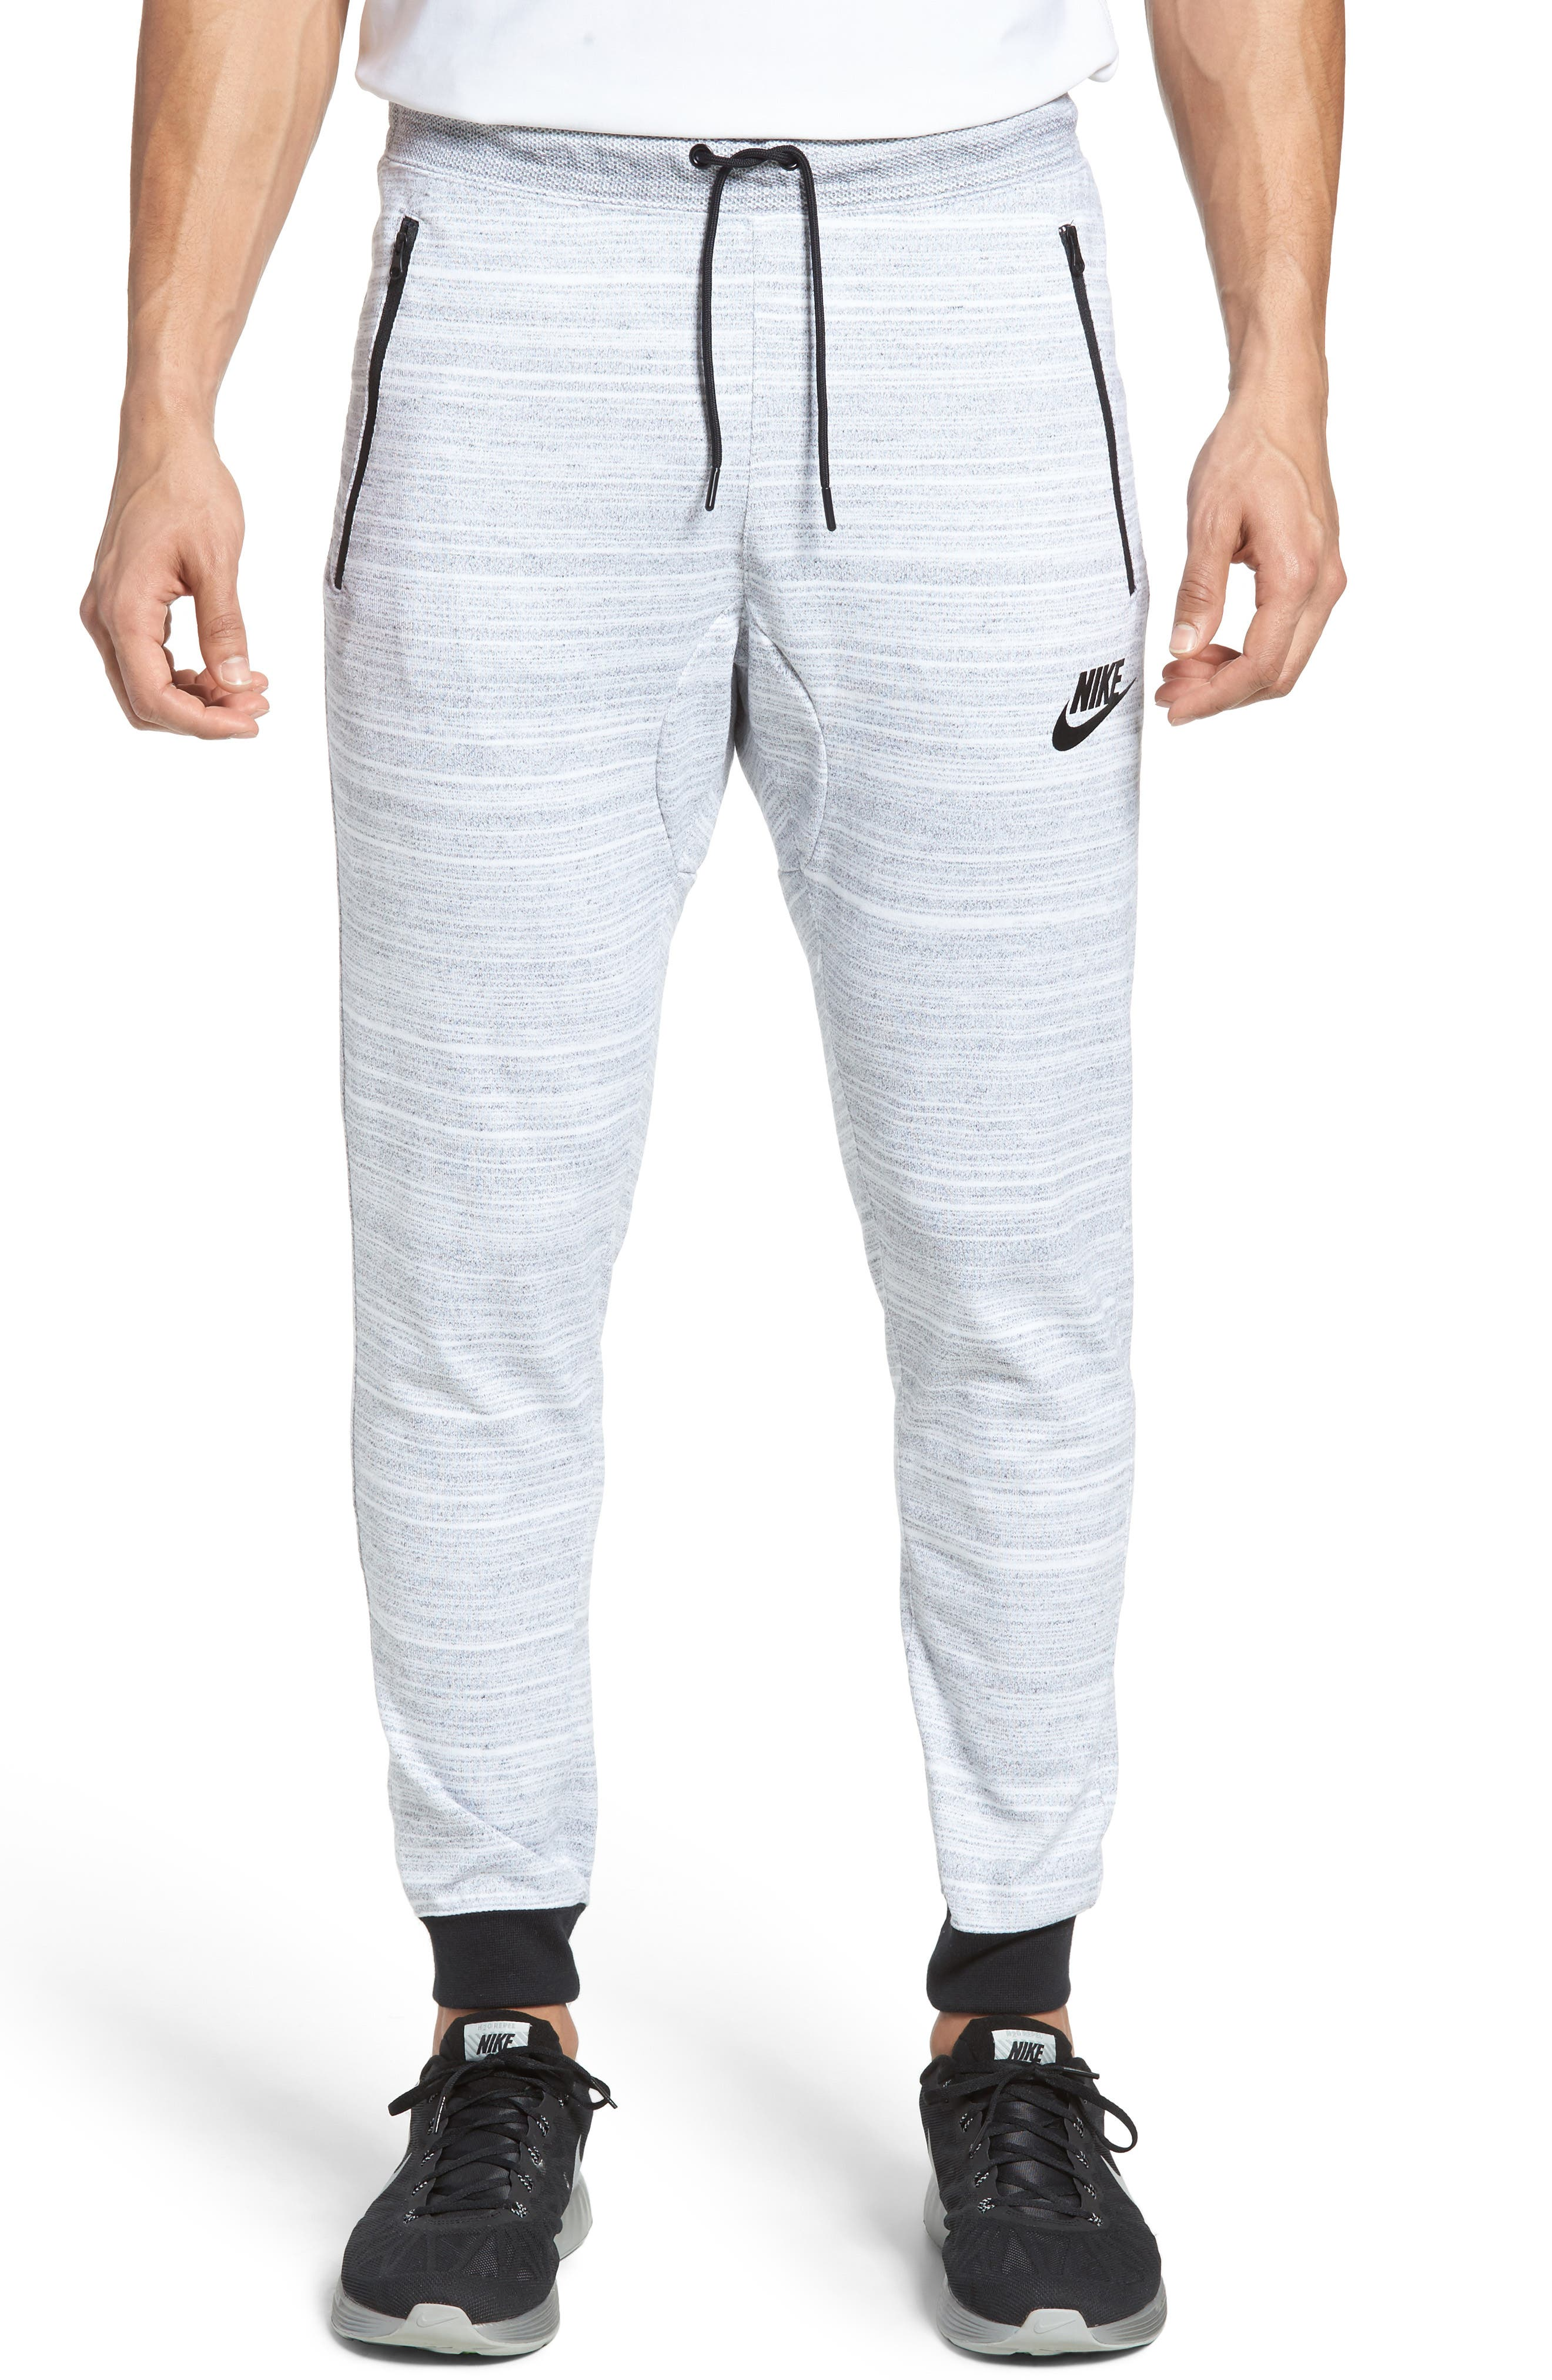 Main Image - Nike Advance 15 Pants